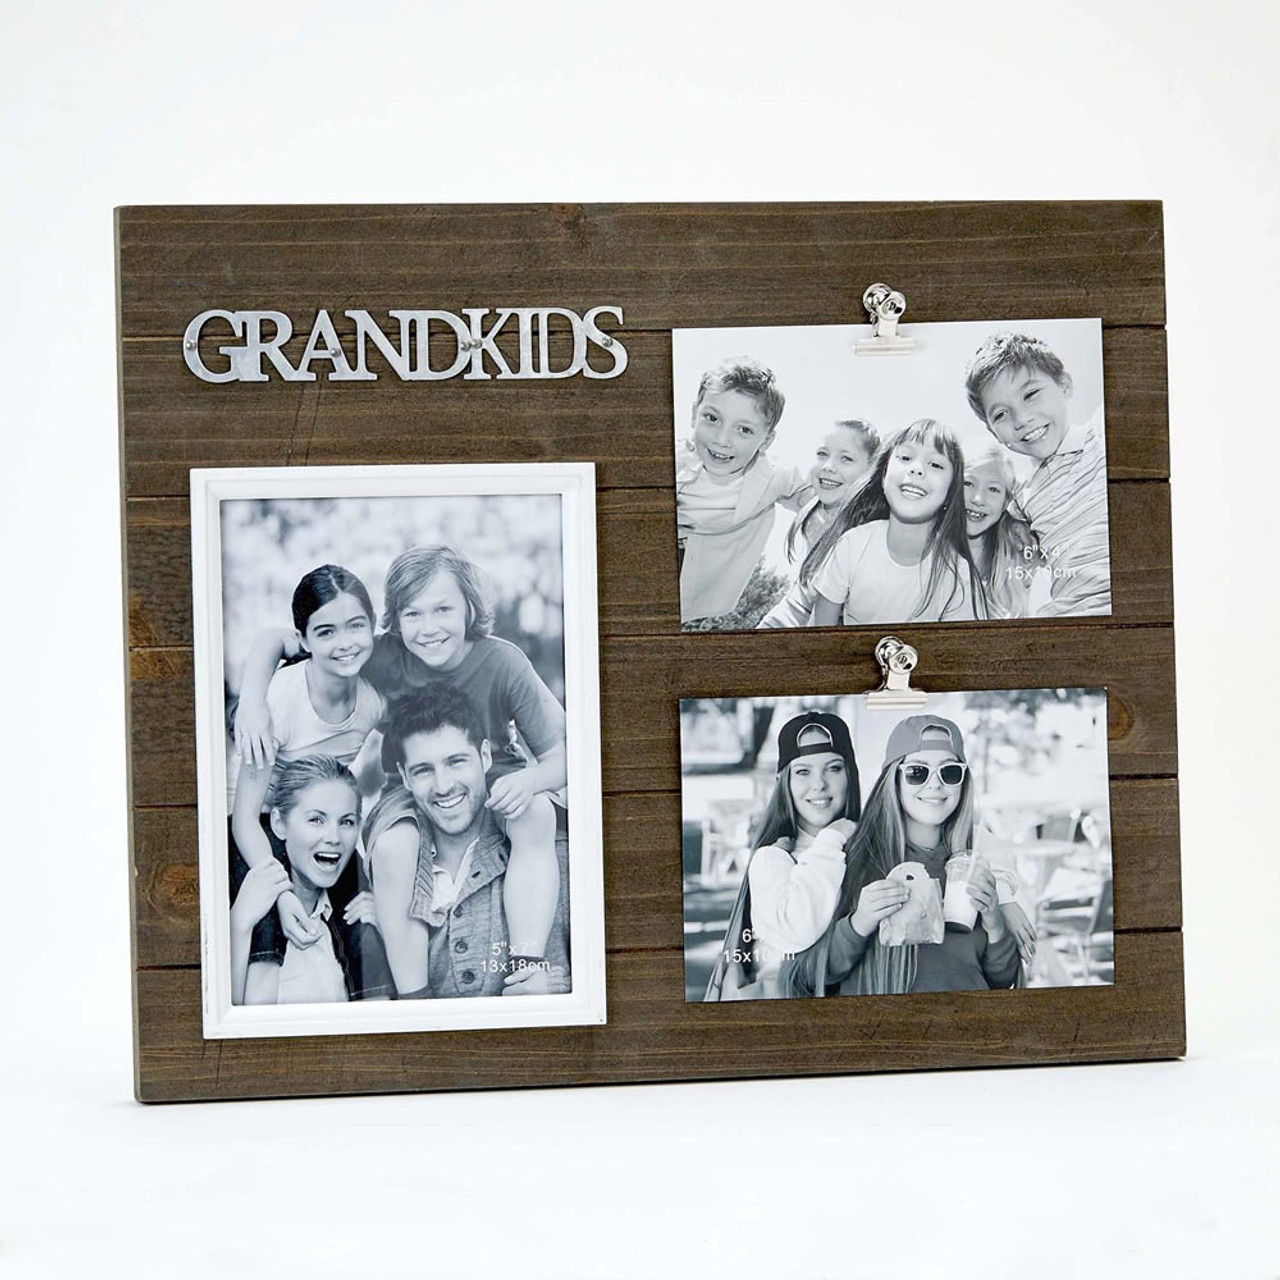 Triple Photo Grandkids Wood Frame One 5X7 And Two 4X6 Photos